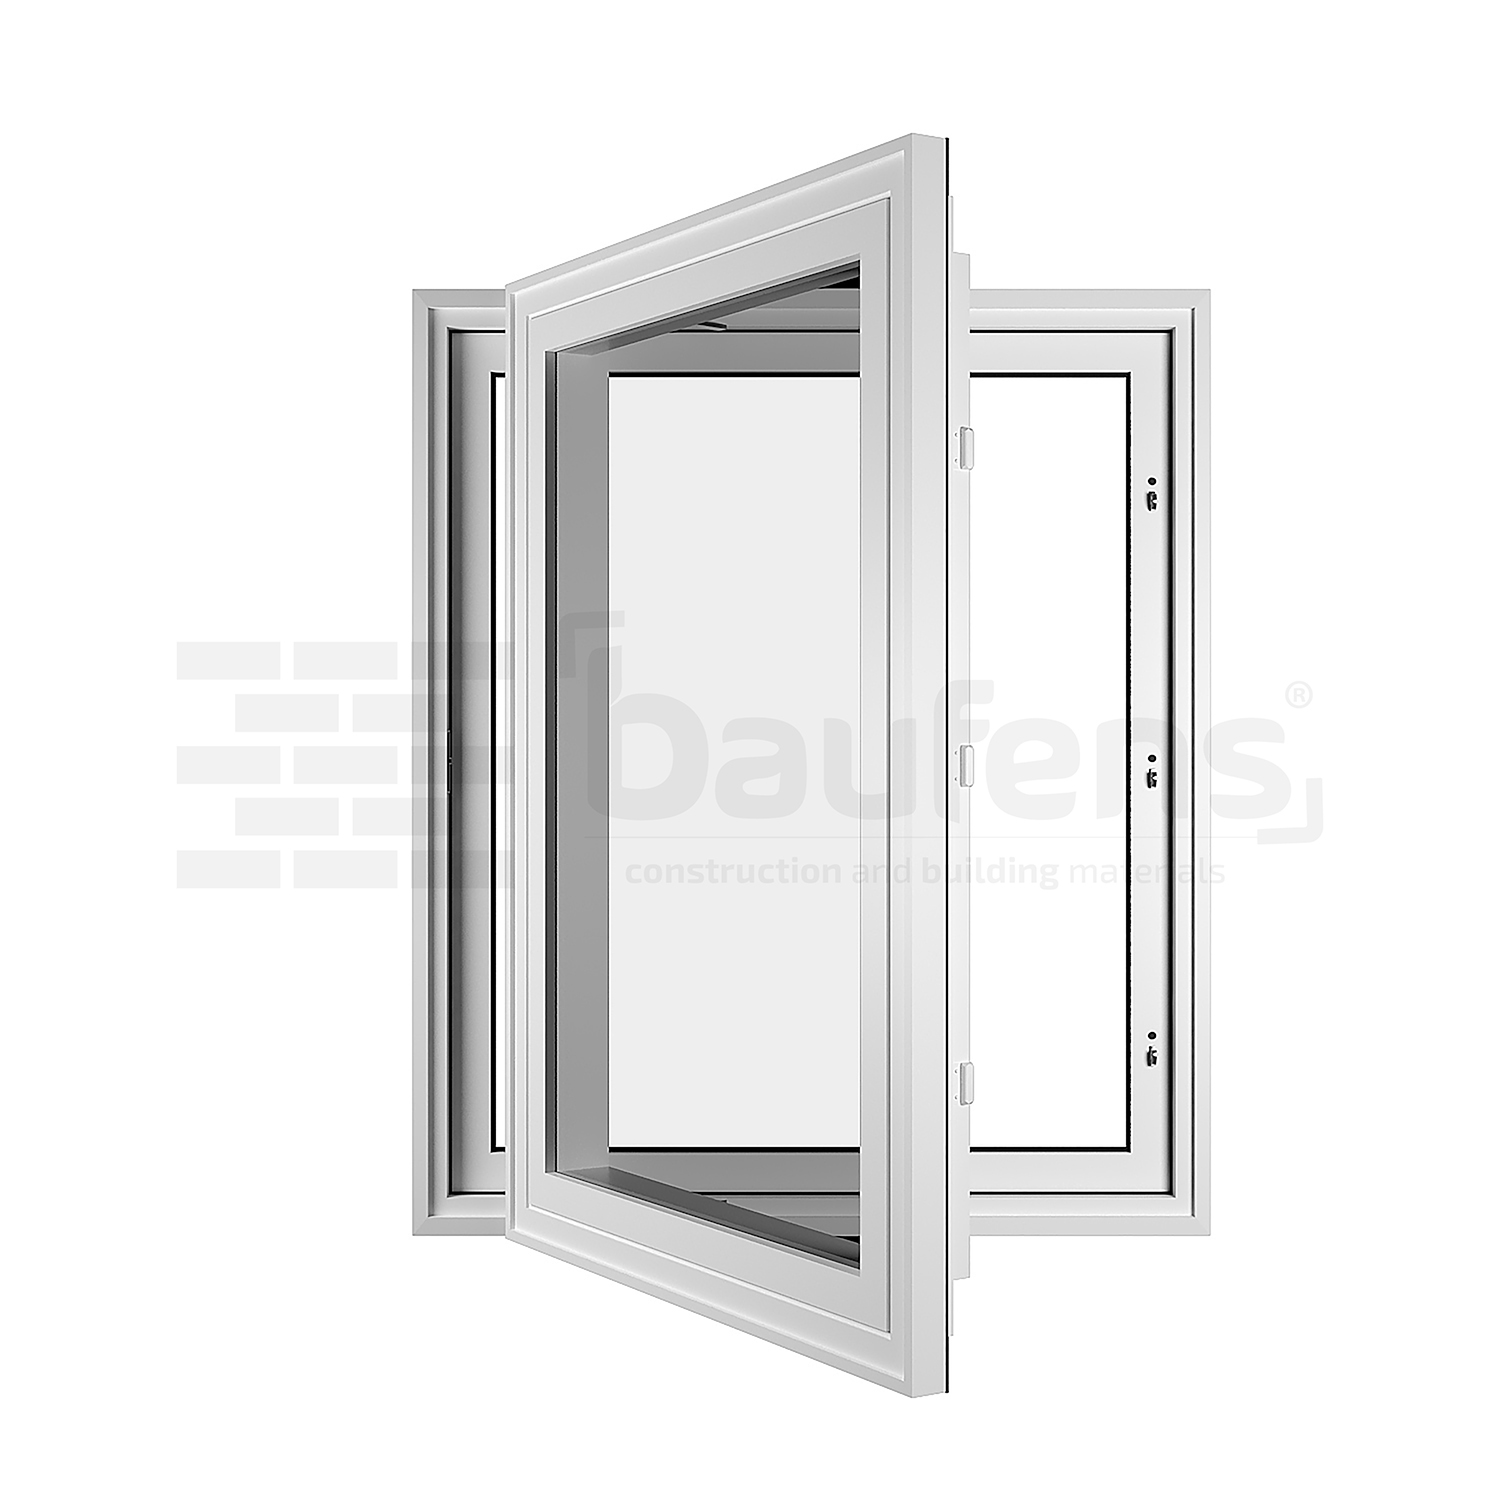 castment-window-upvc-size-60-x7x110-cm.